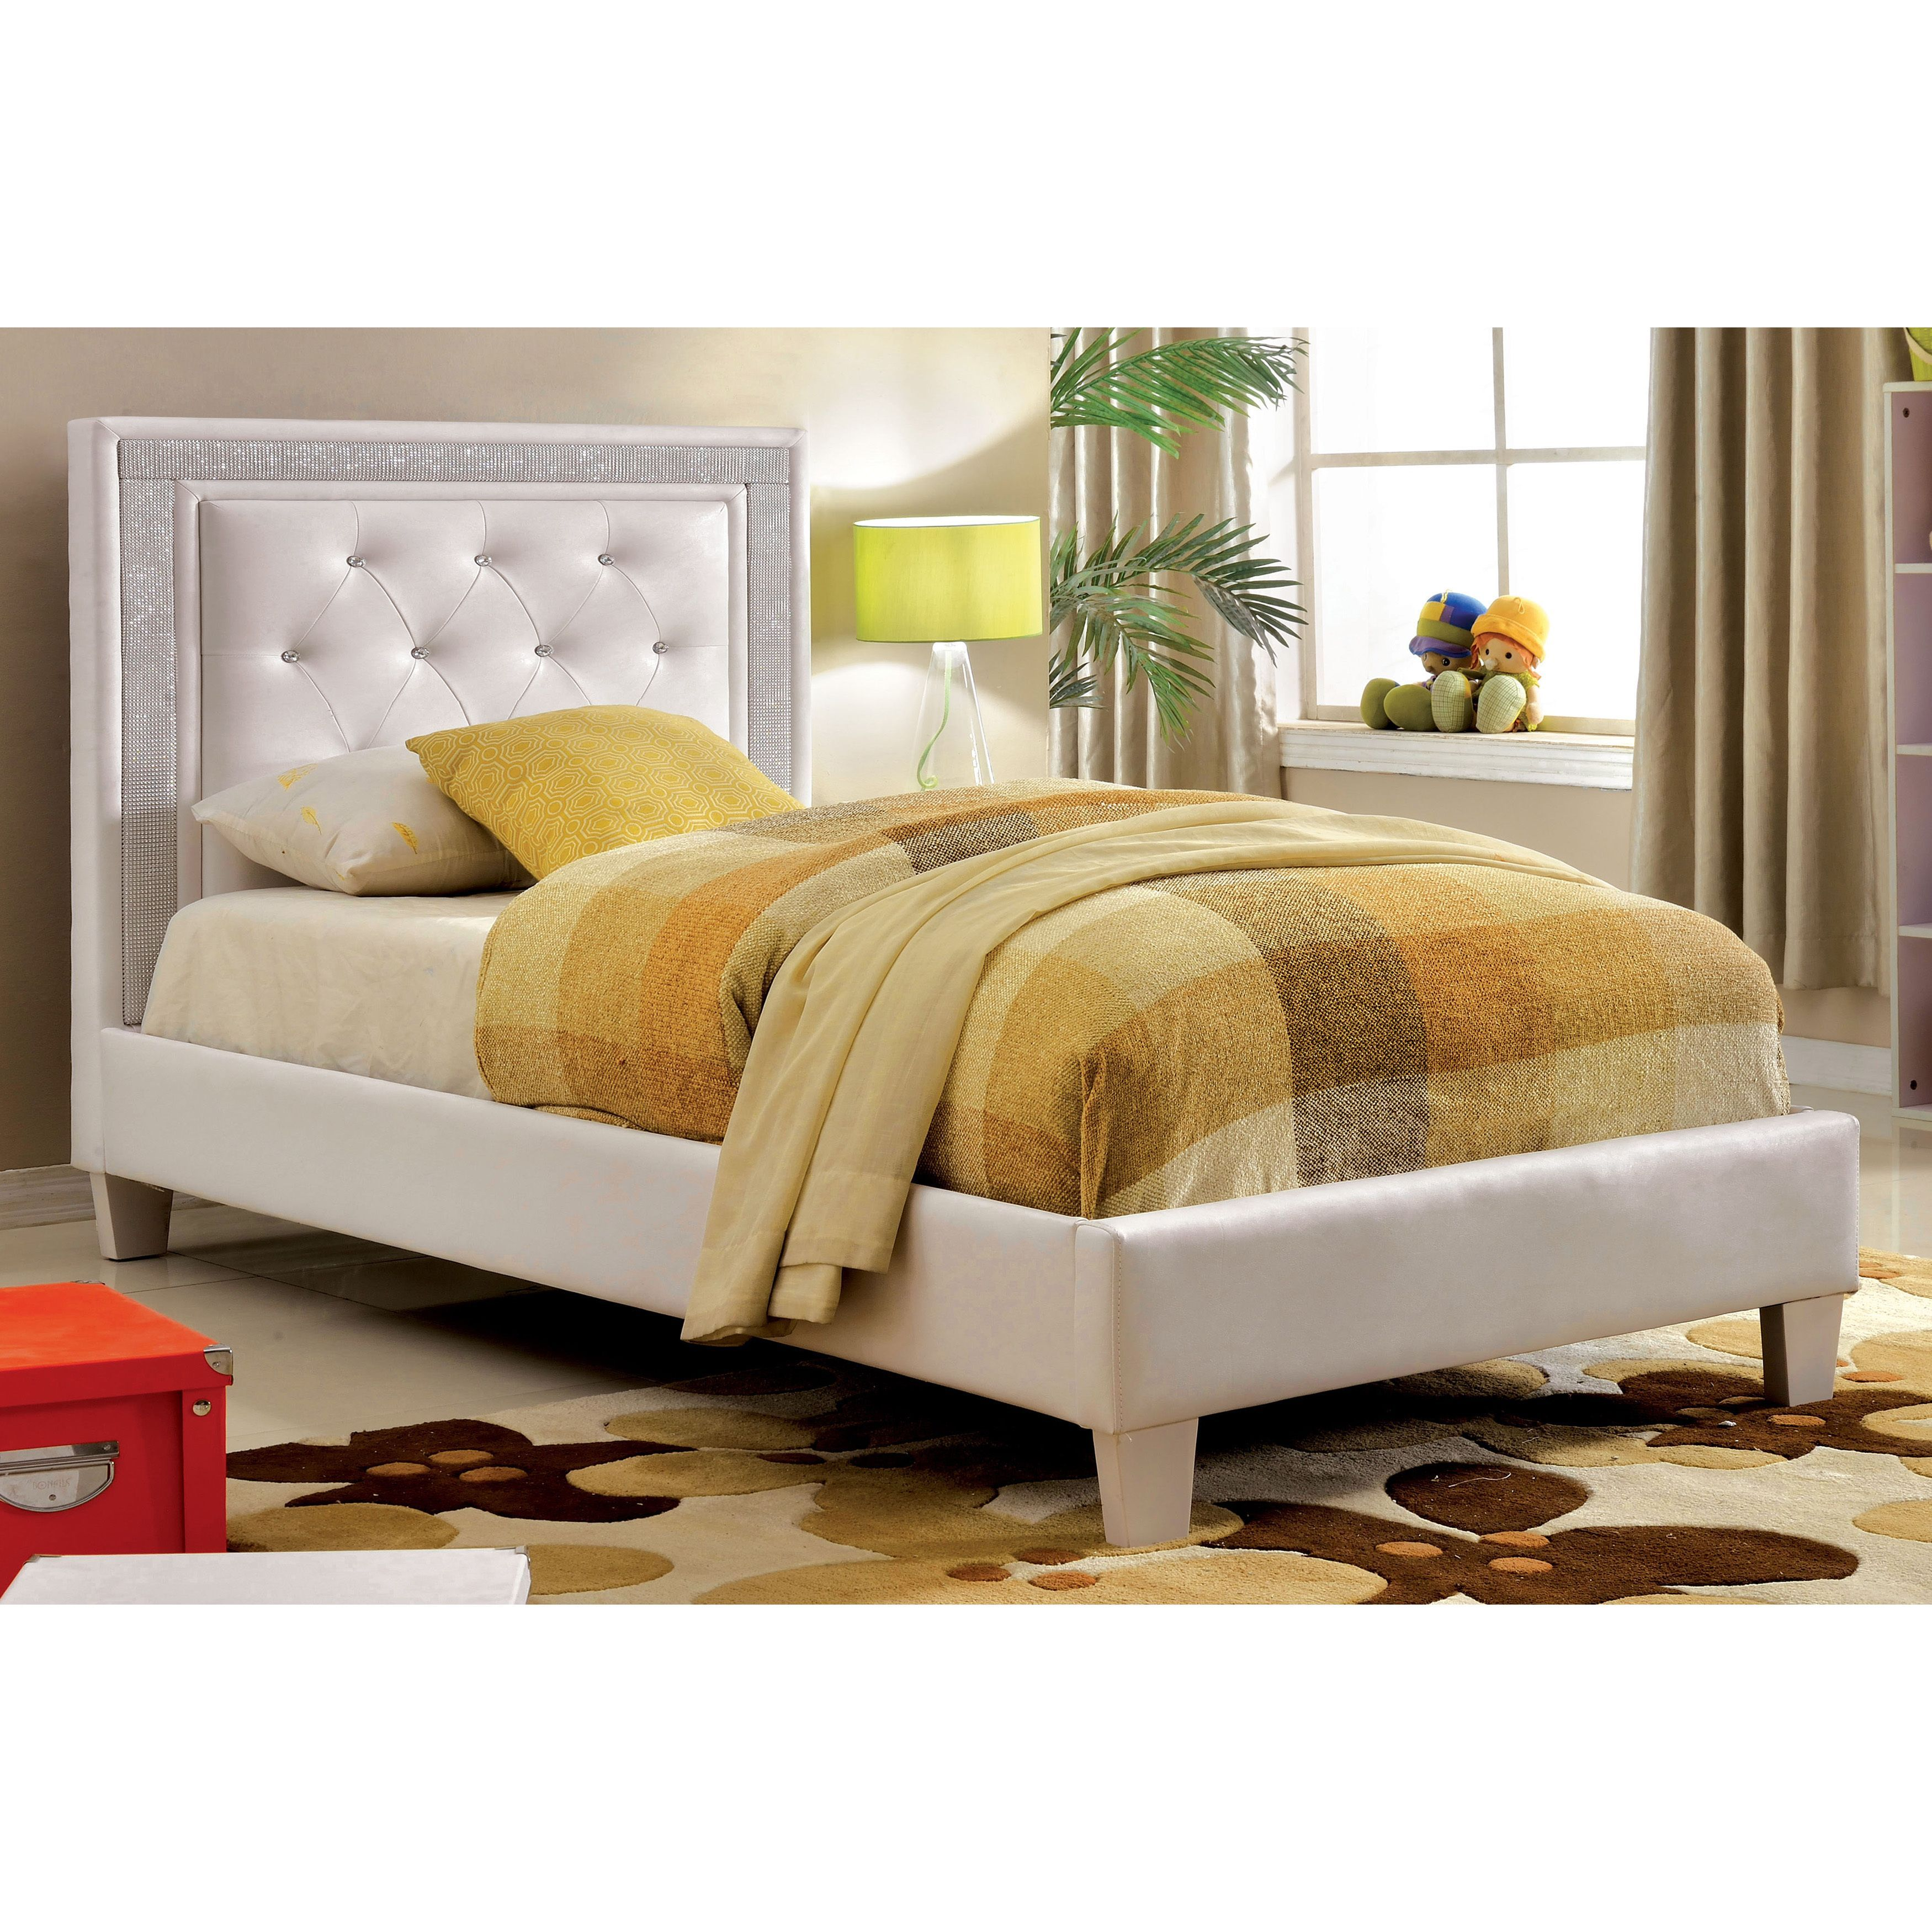 Furniture Of America Sheila Contemporary Tufted Leatherette Full Size  Platform Bed